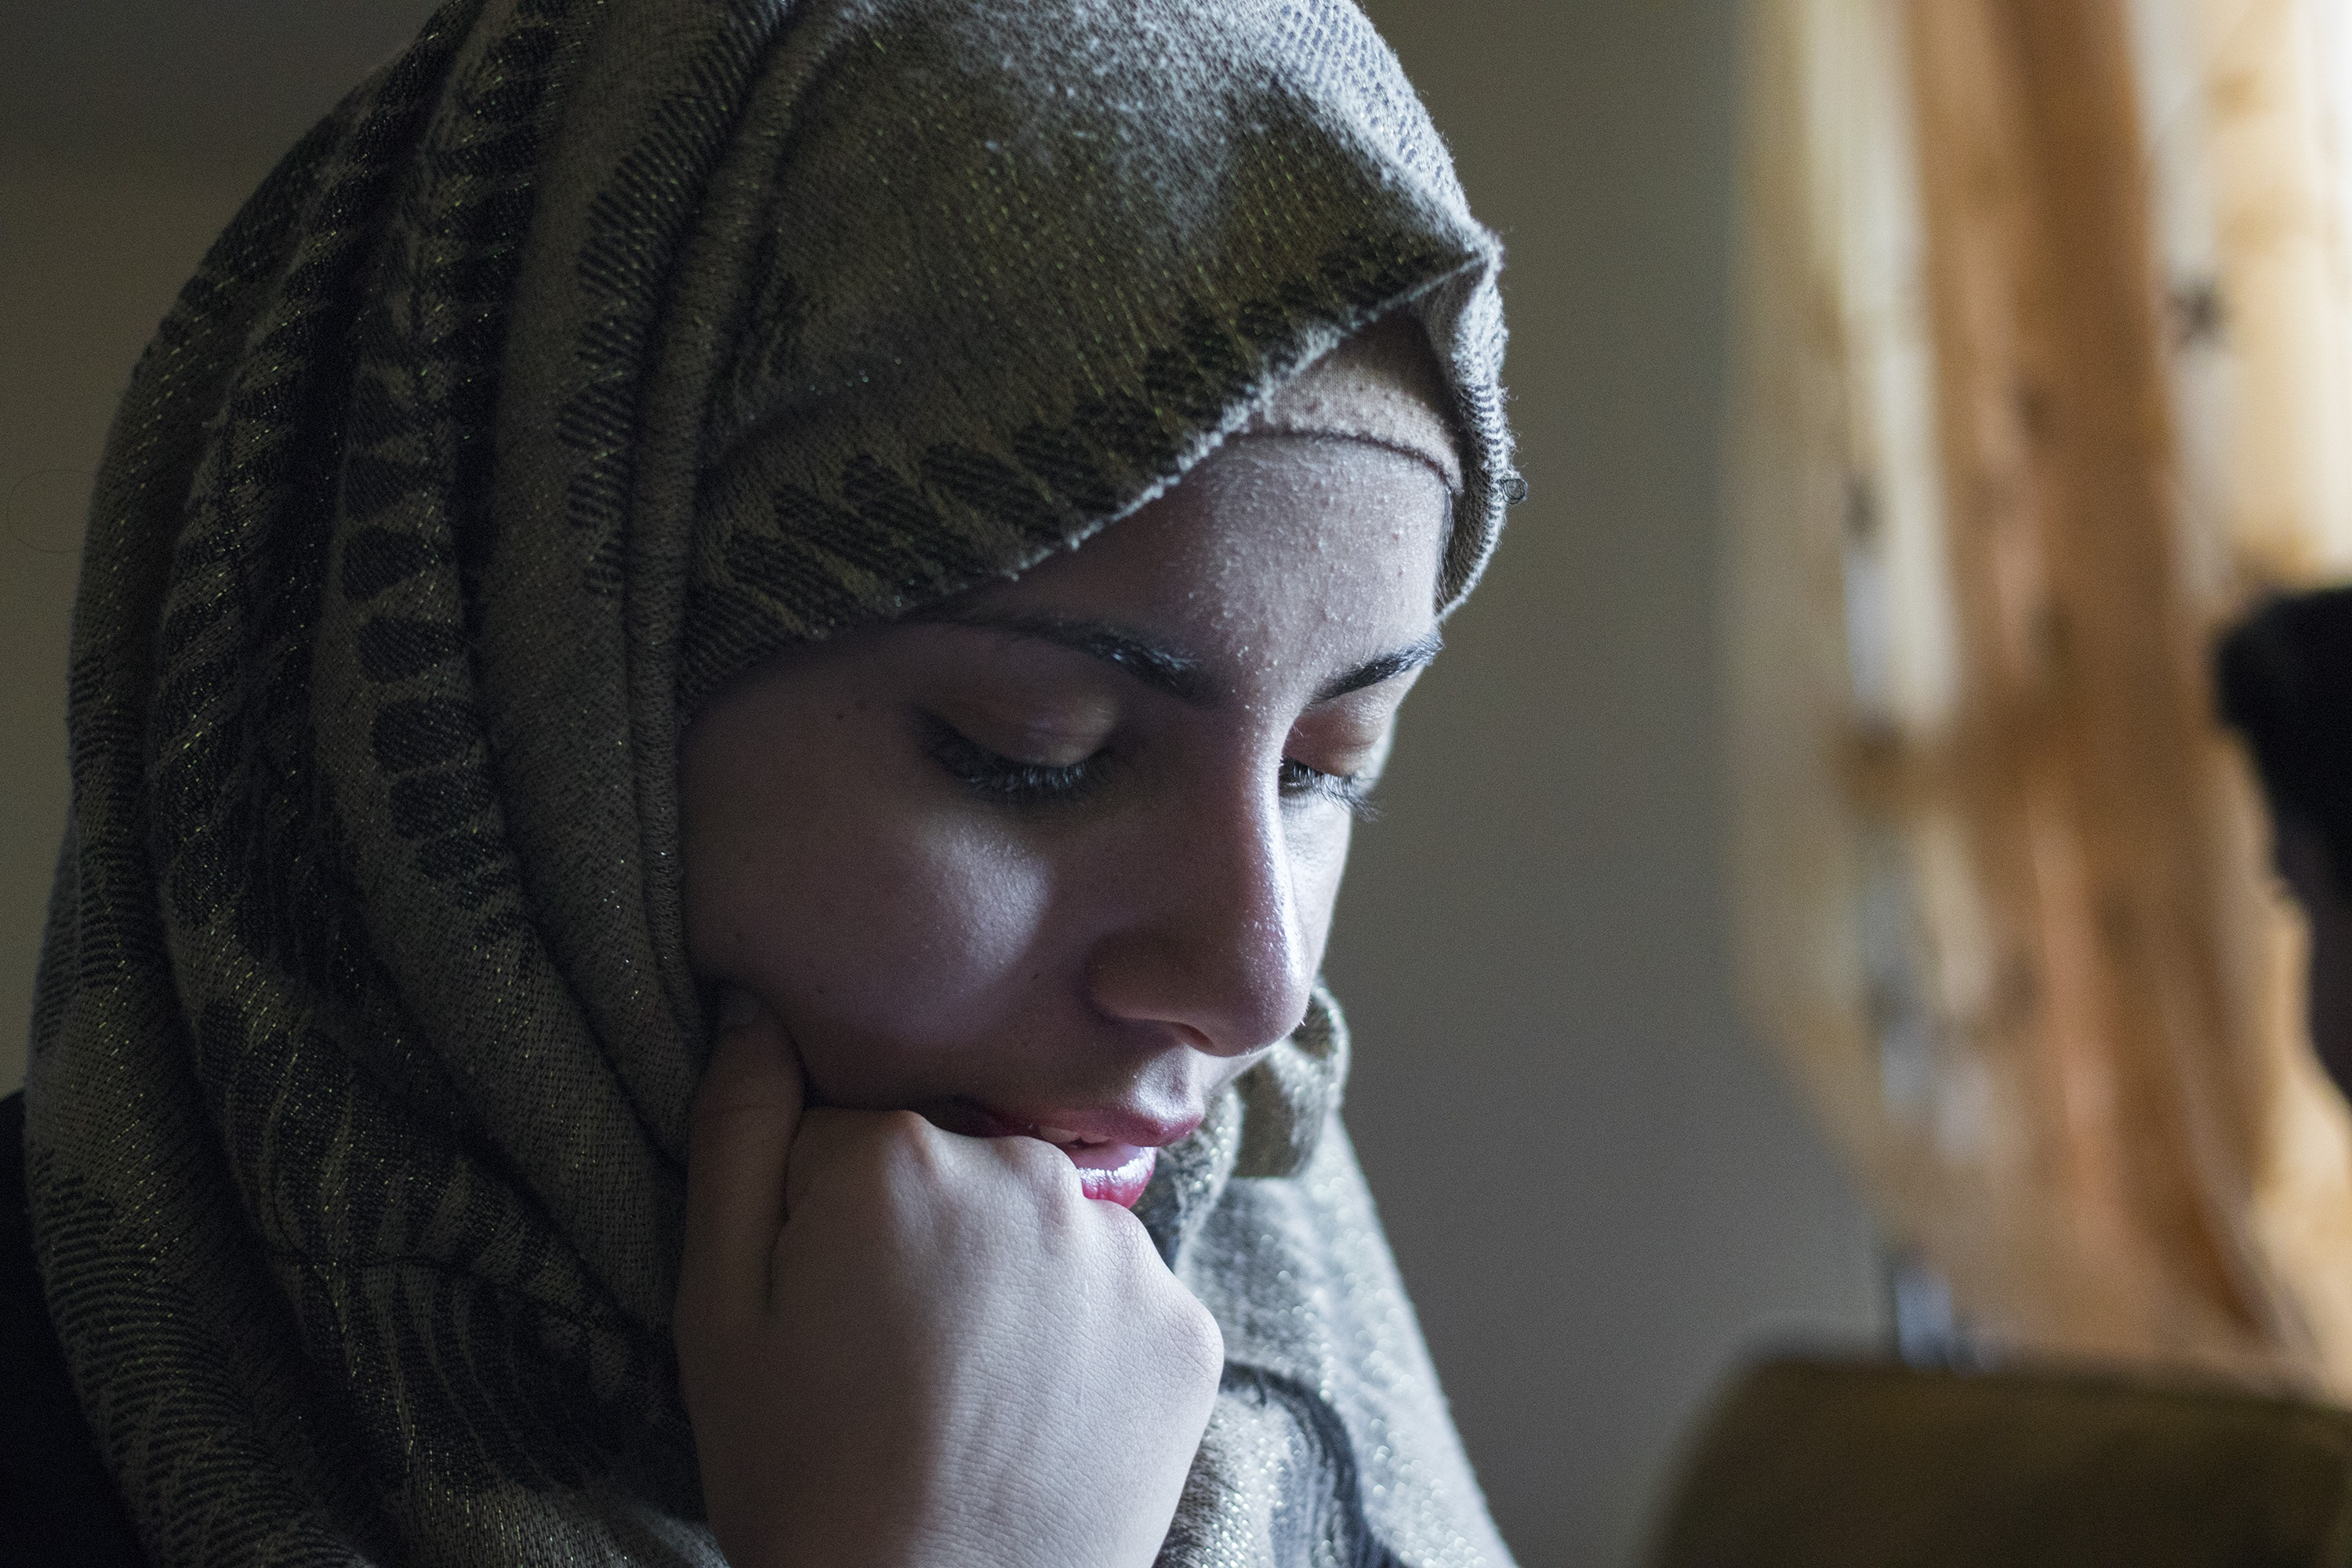 Marwa Harb, 16, at her home in Halifax. (Dave Irish/CBC)